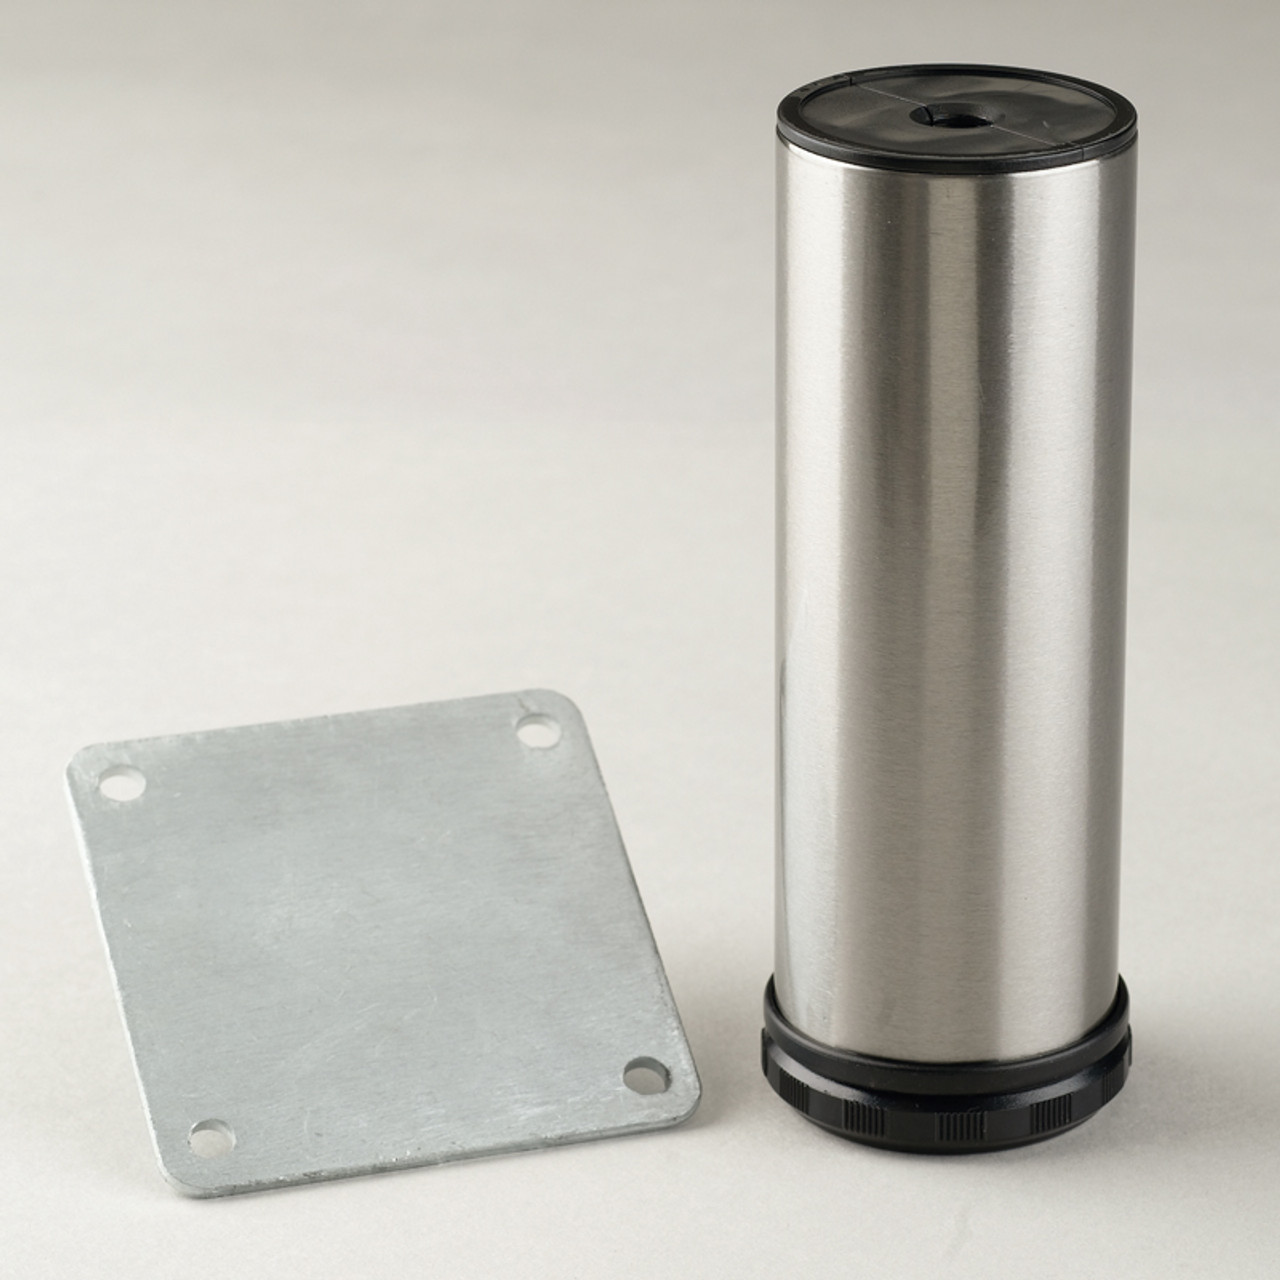 Brushed Steel Como Leg, Cabinet Leg with mounting bracket - replacementtablelegs.com